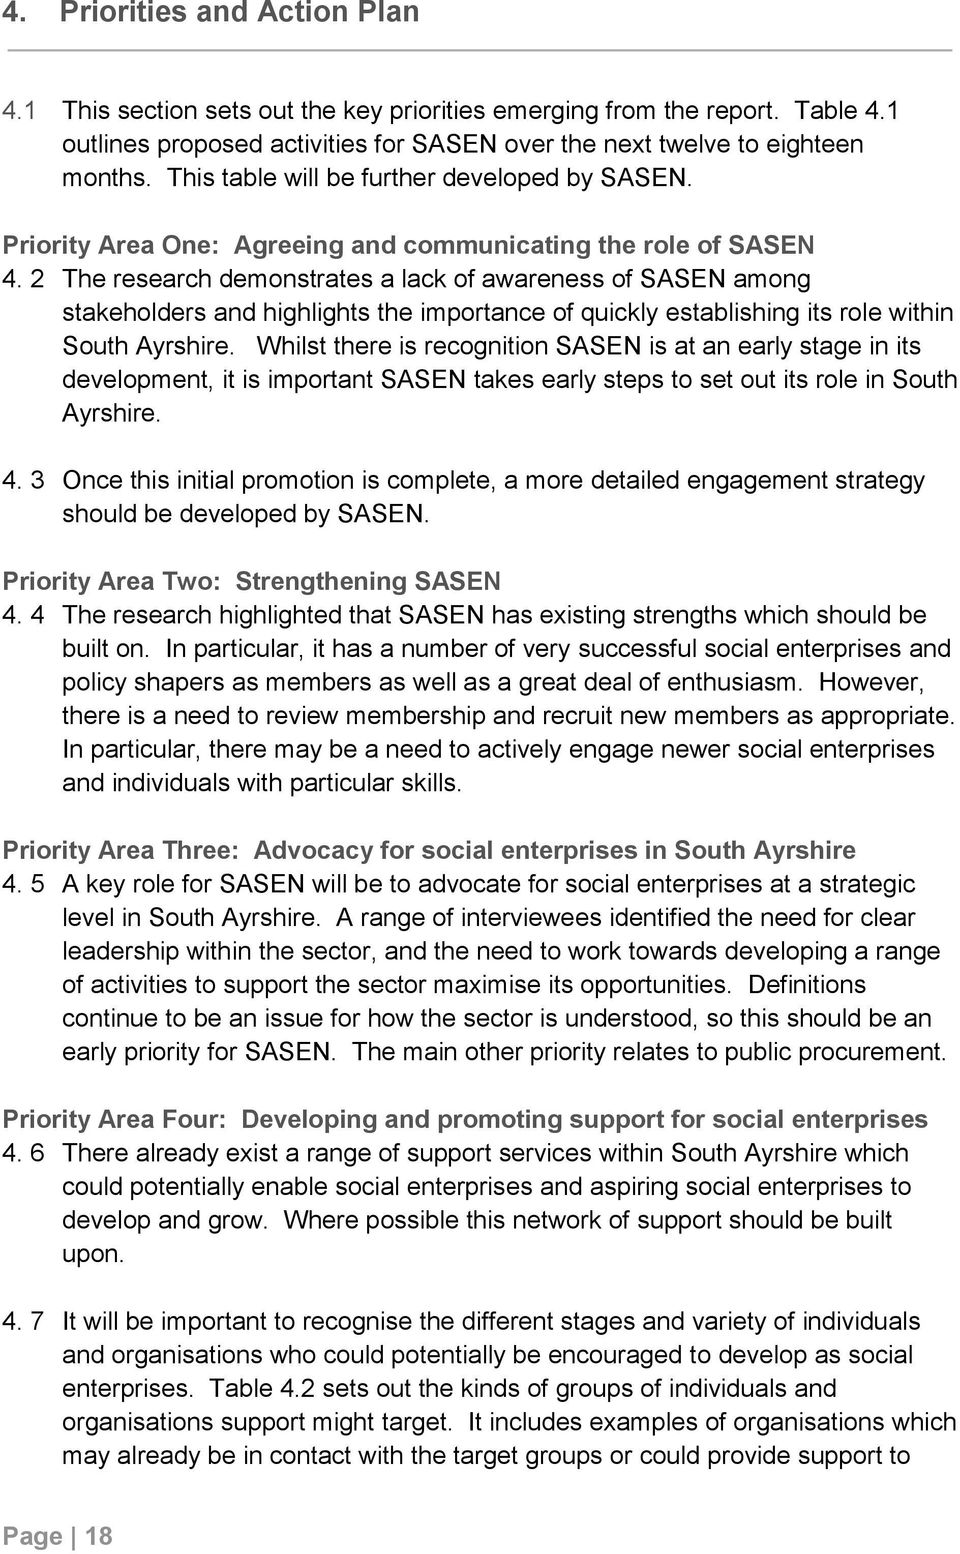 2 The research demonstrates a lack of awareness of SASEN among stakeholders and highlights the importance of quickly establishing its role within South Ayrshire.